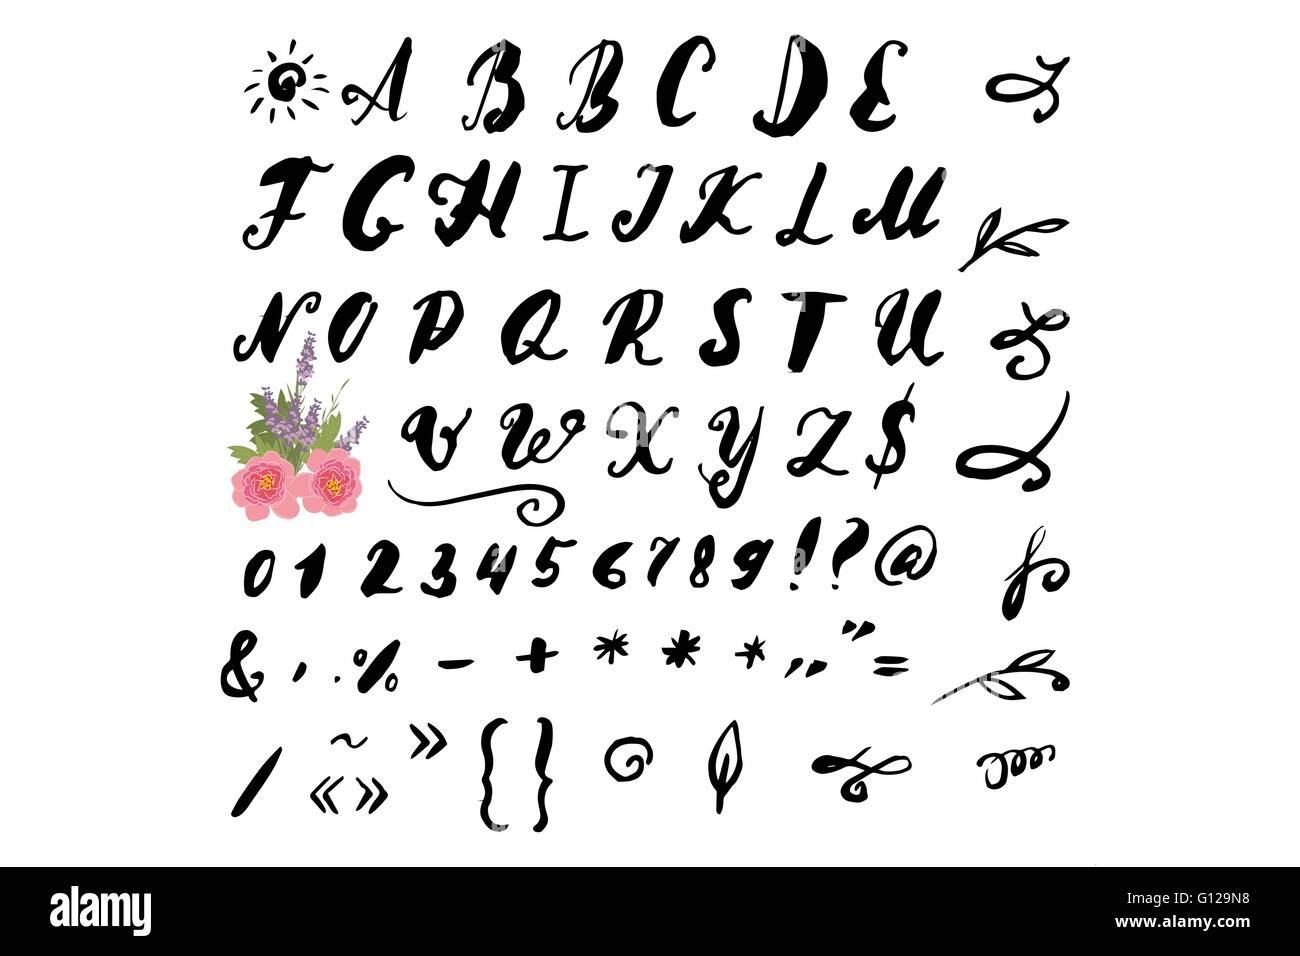 Vector Illustration Brush Style Of Calligraphy Alphabet